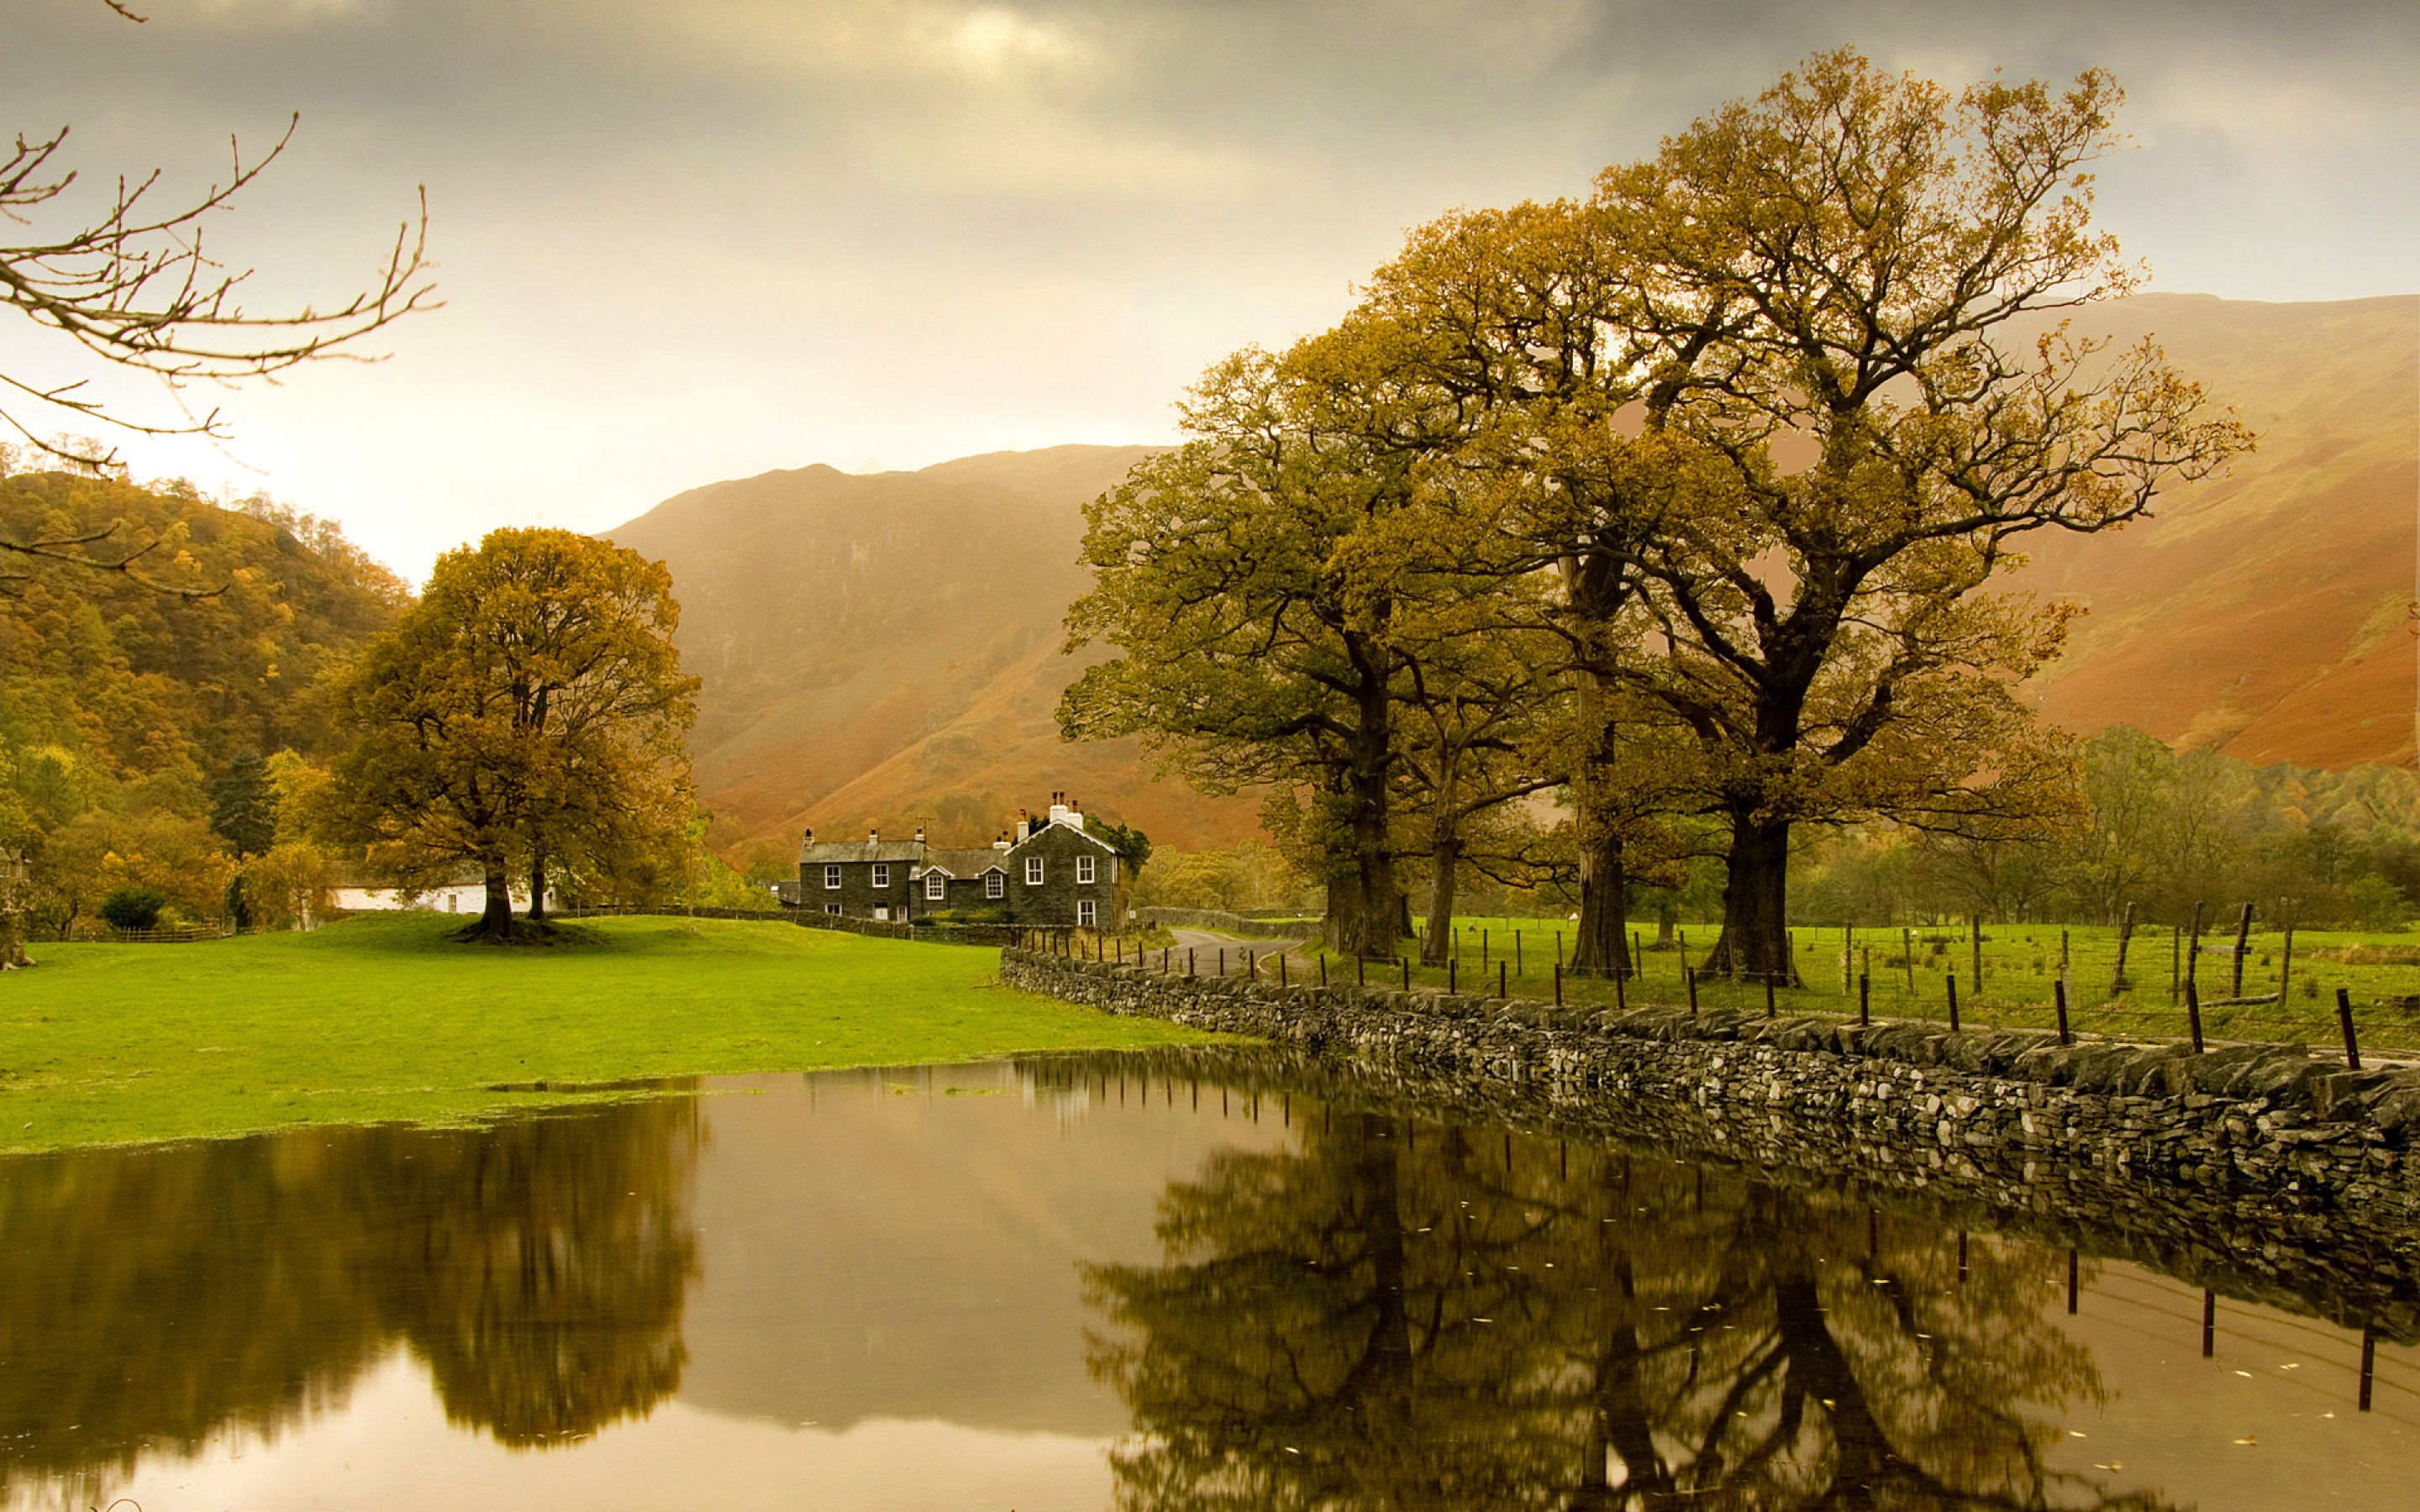 Autumn in the countryside wallpaper 2880x1800 4151 for Wallpaper home england